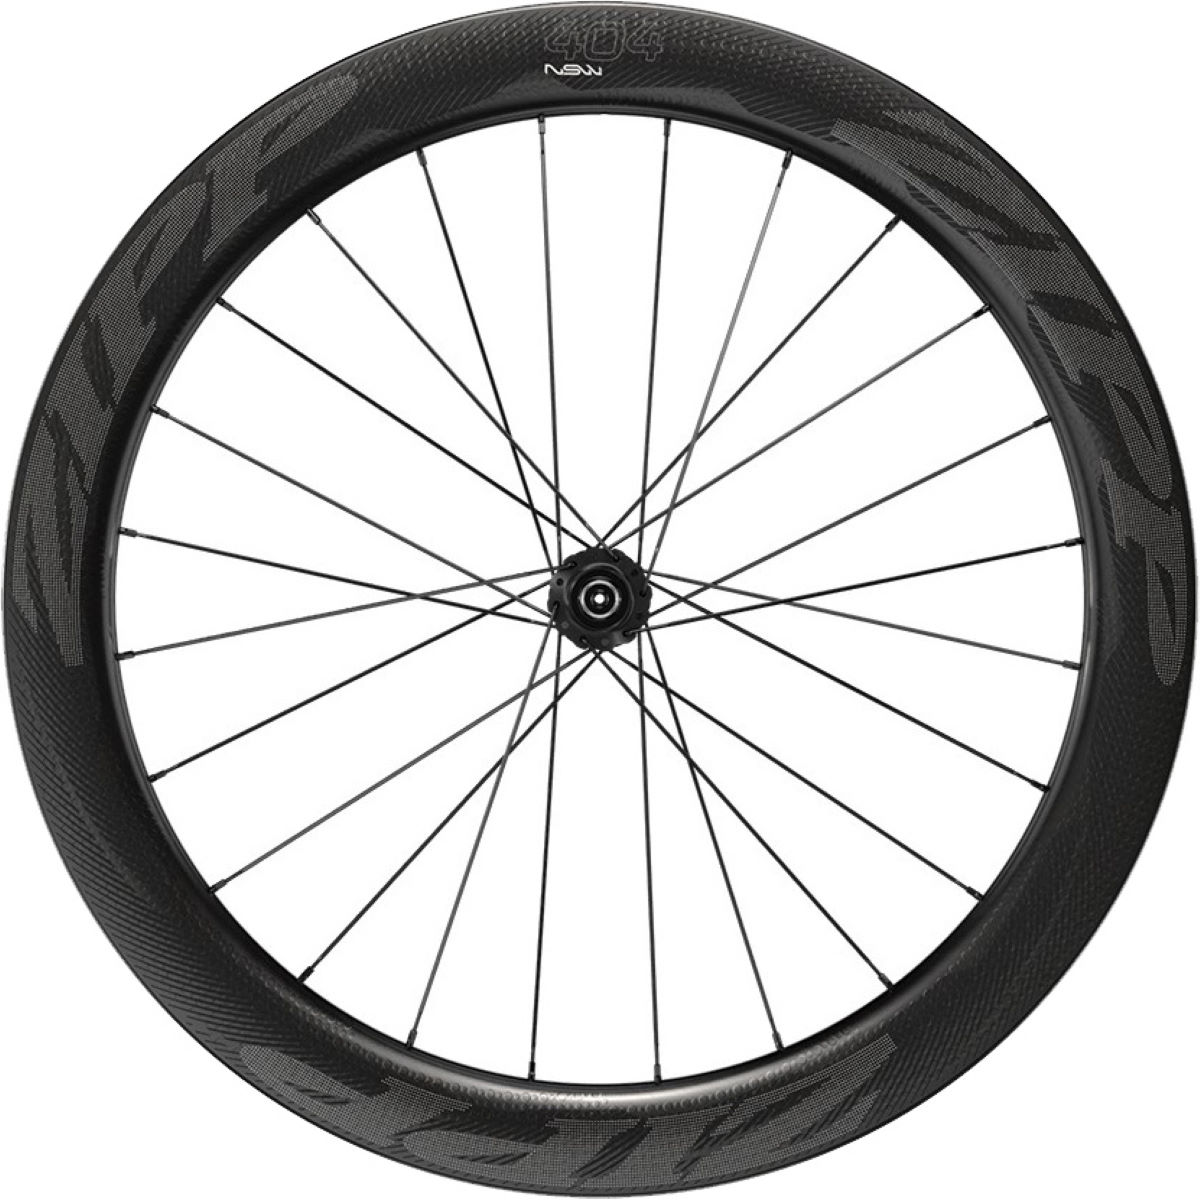 Zipp 404 NSW Carbon Road Disc Front Wheel   Front Wheels